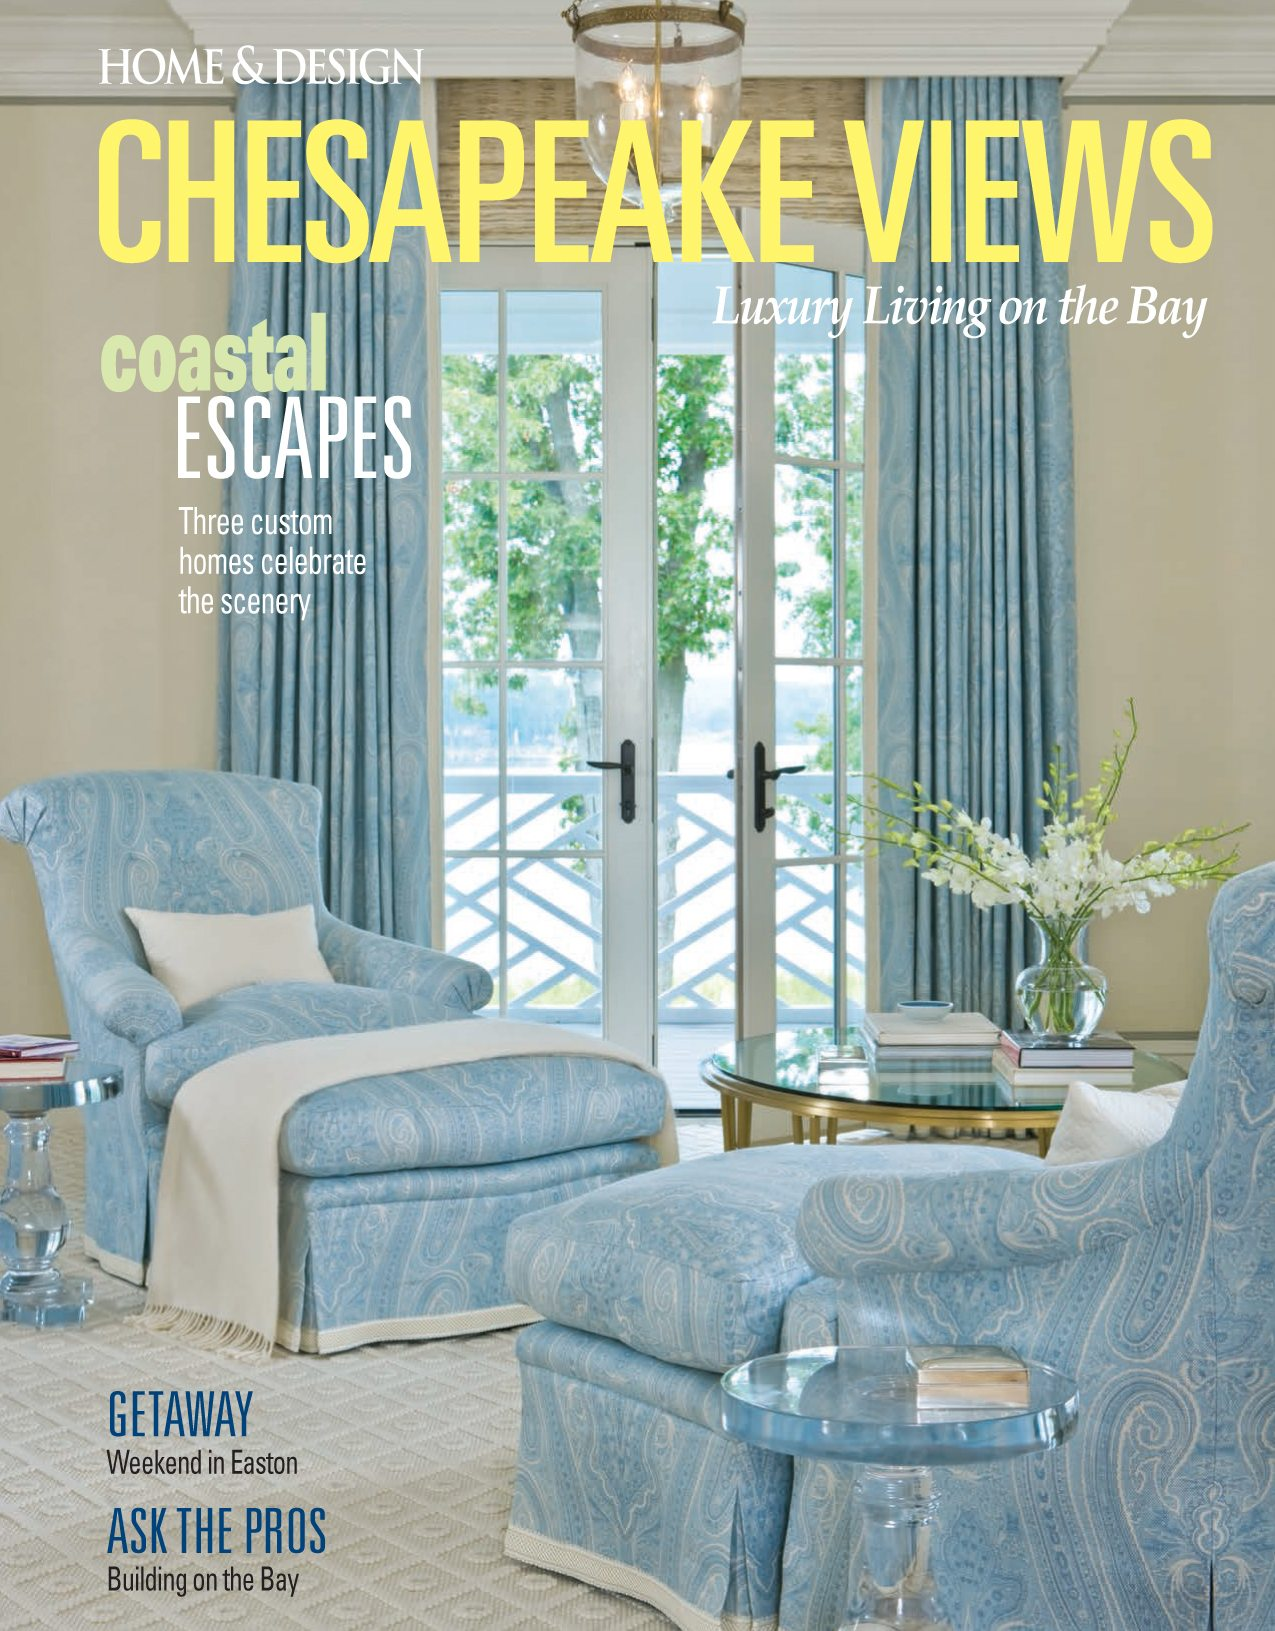 Chesapeake views spring 2016 archives   home & design magazine